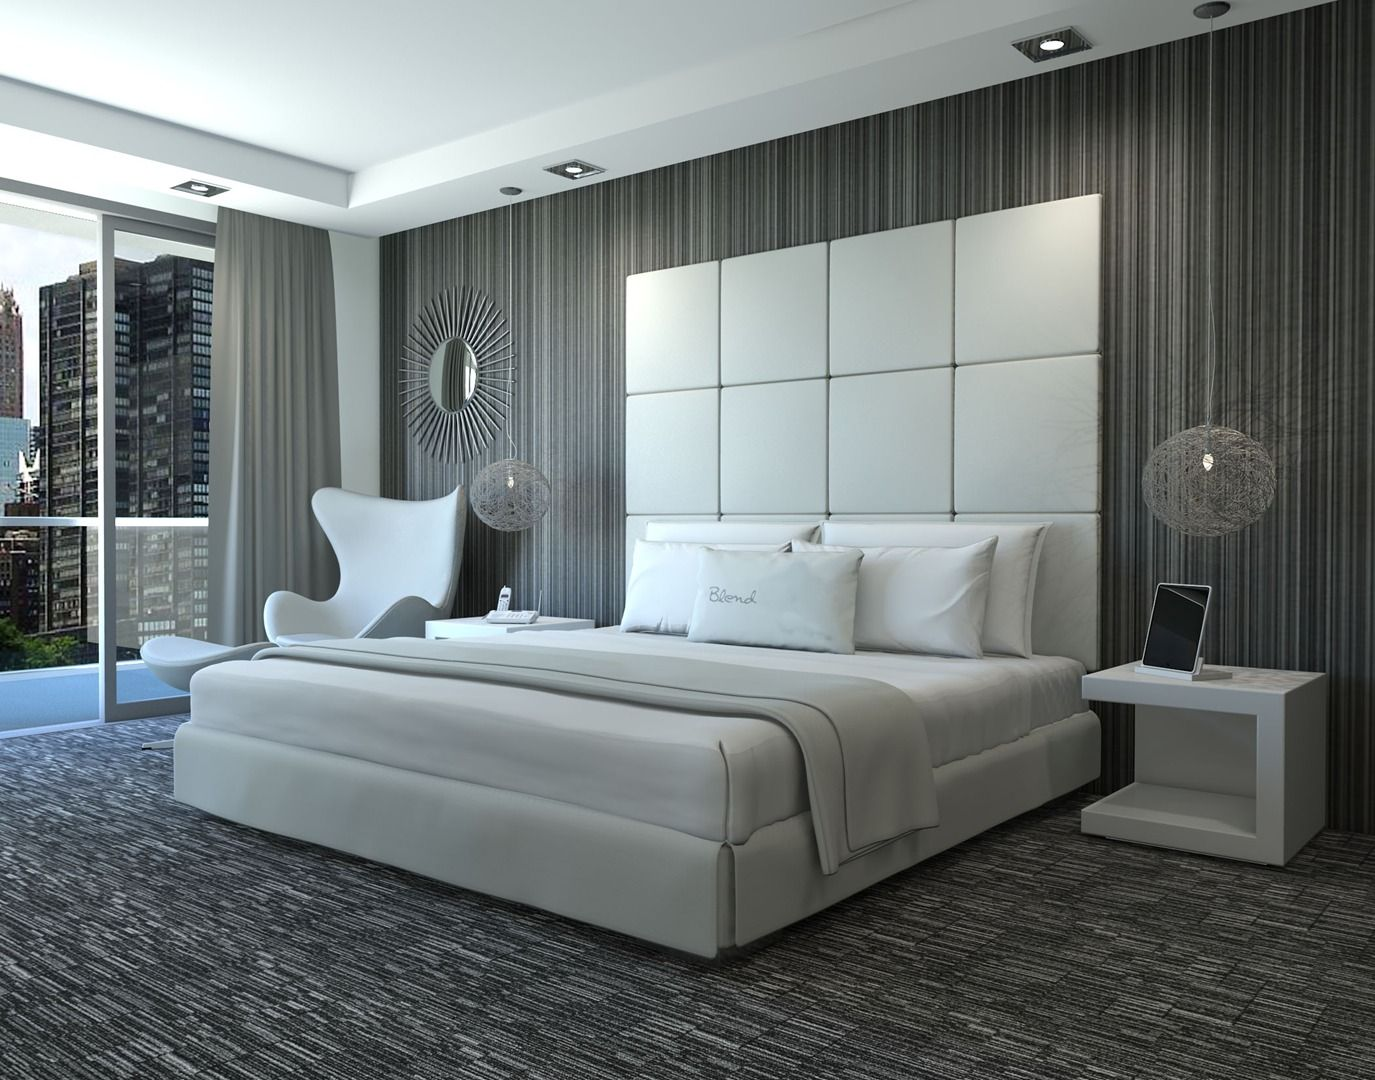 Luxury Modern Sleek Bedroom